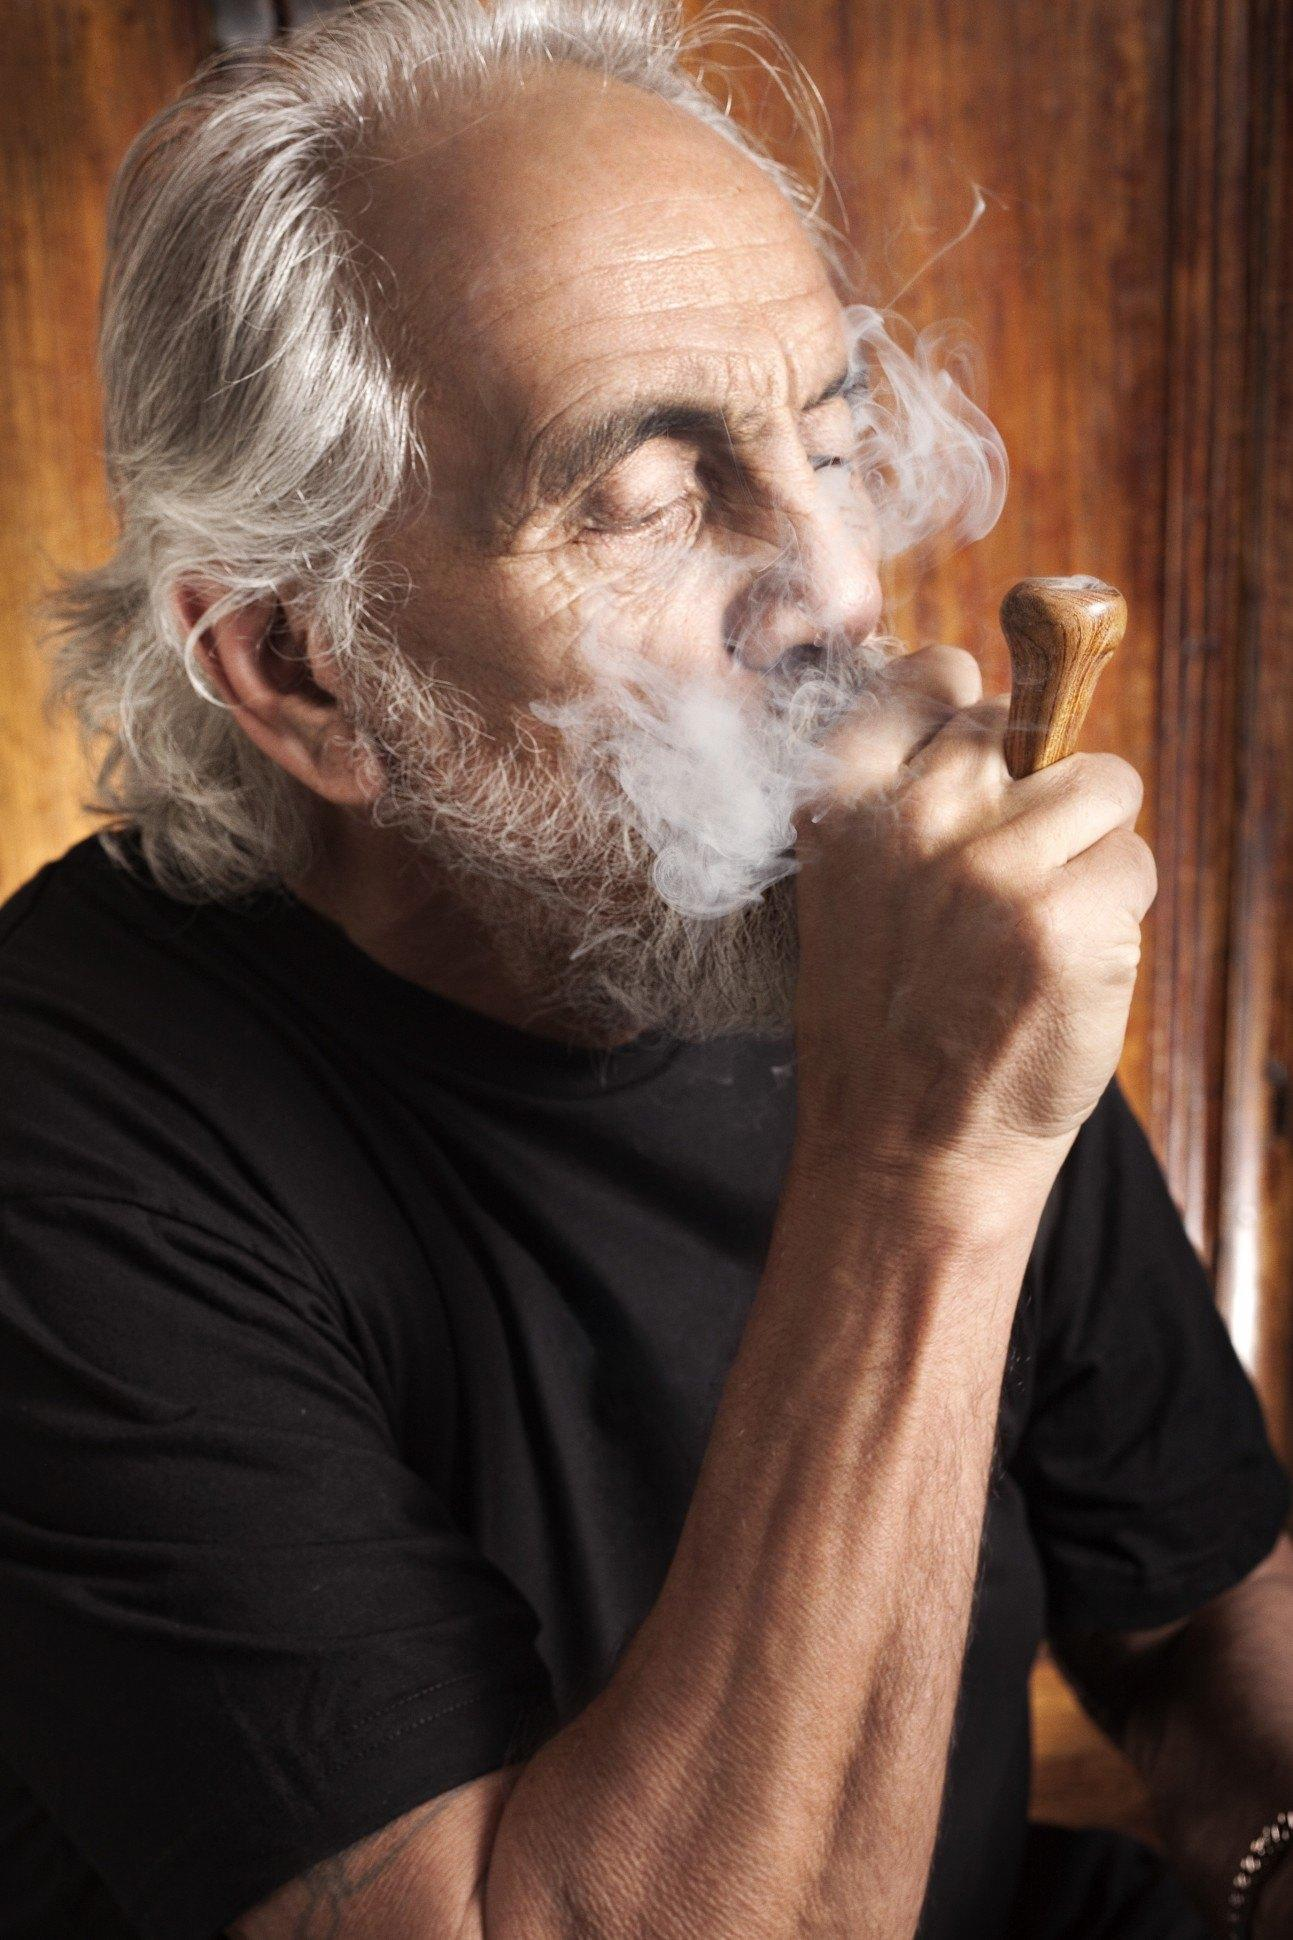 Image of Tommy Chong smoking legal weed